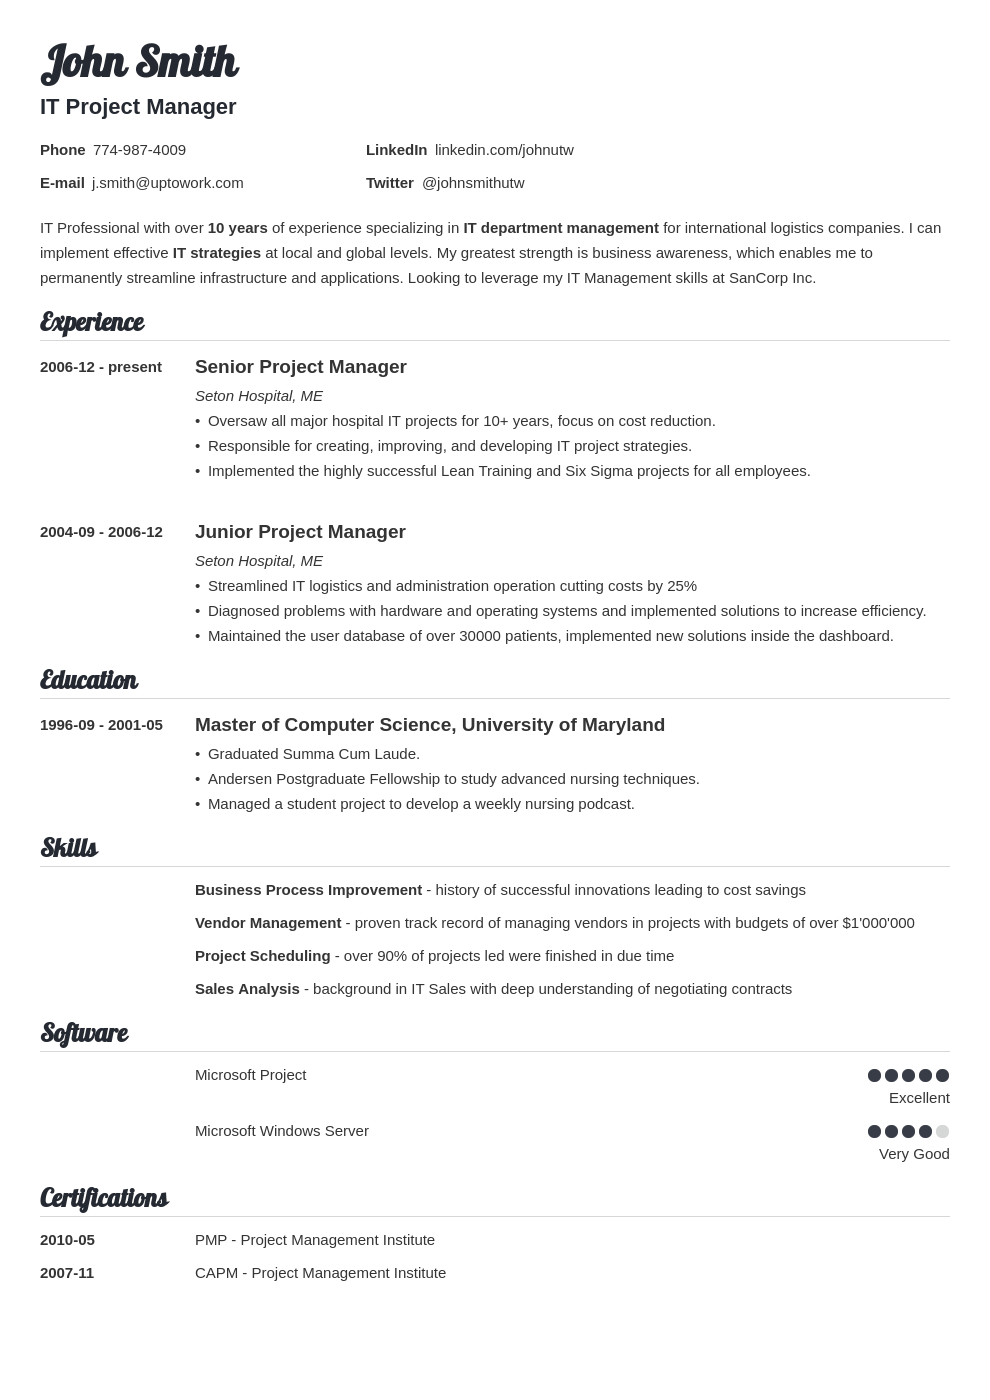 7 valera use this template professional resume template vibes - Template Resumes